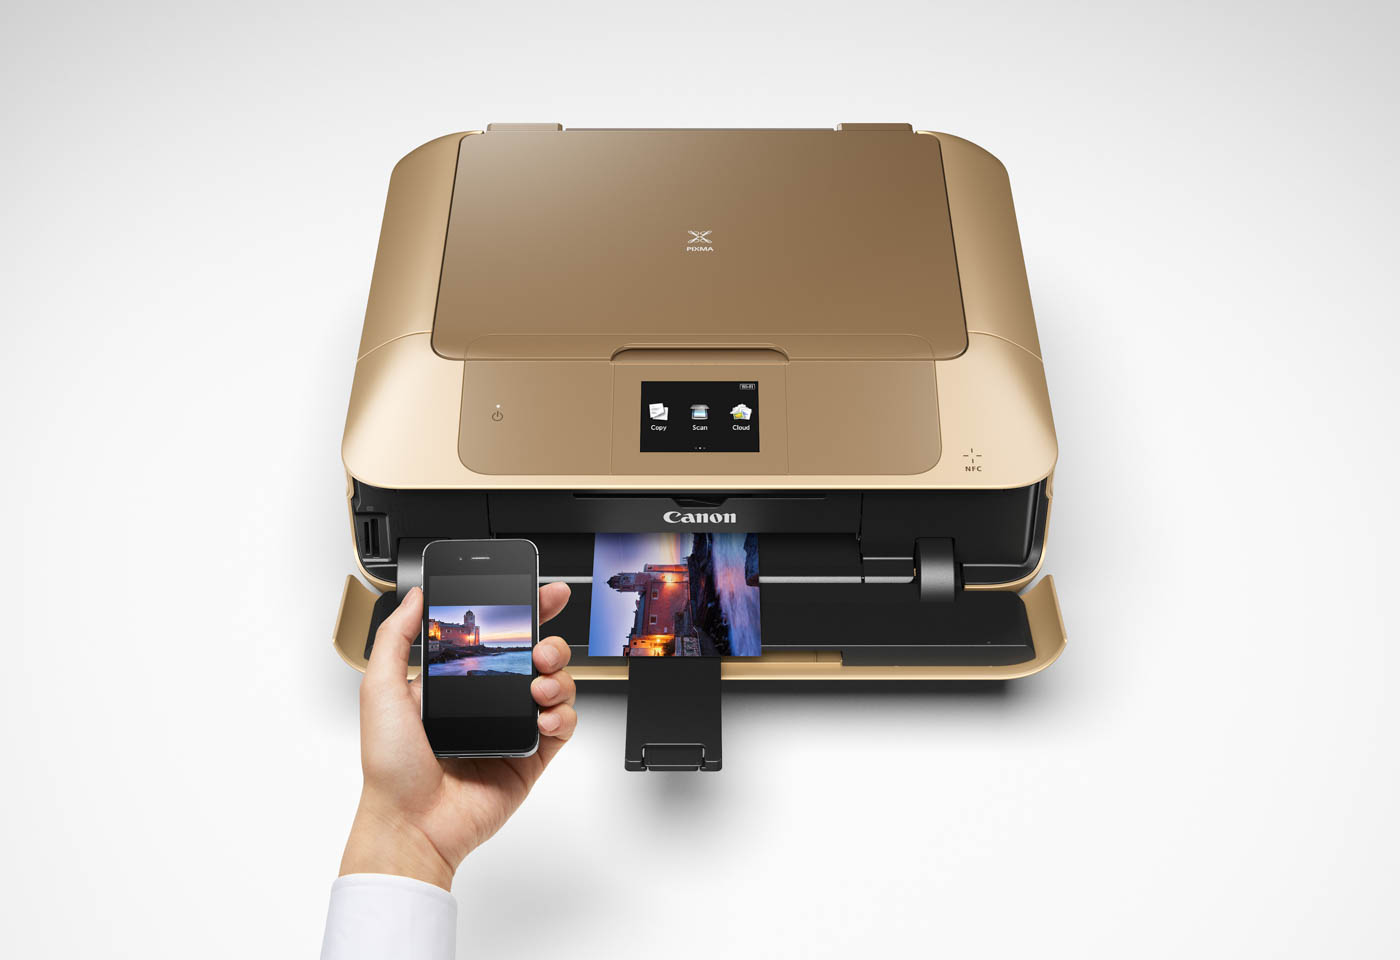 Canon PIXMA Gold MG7766 with smart devices